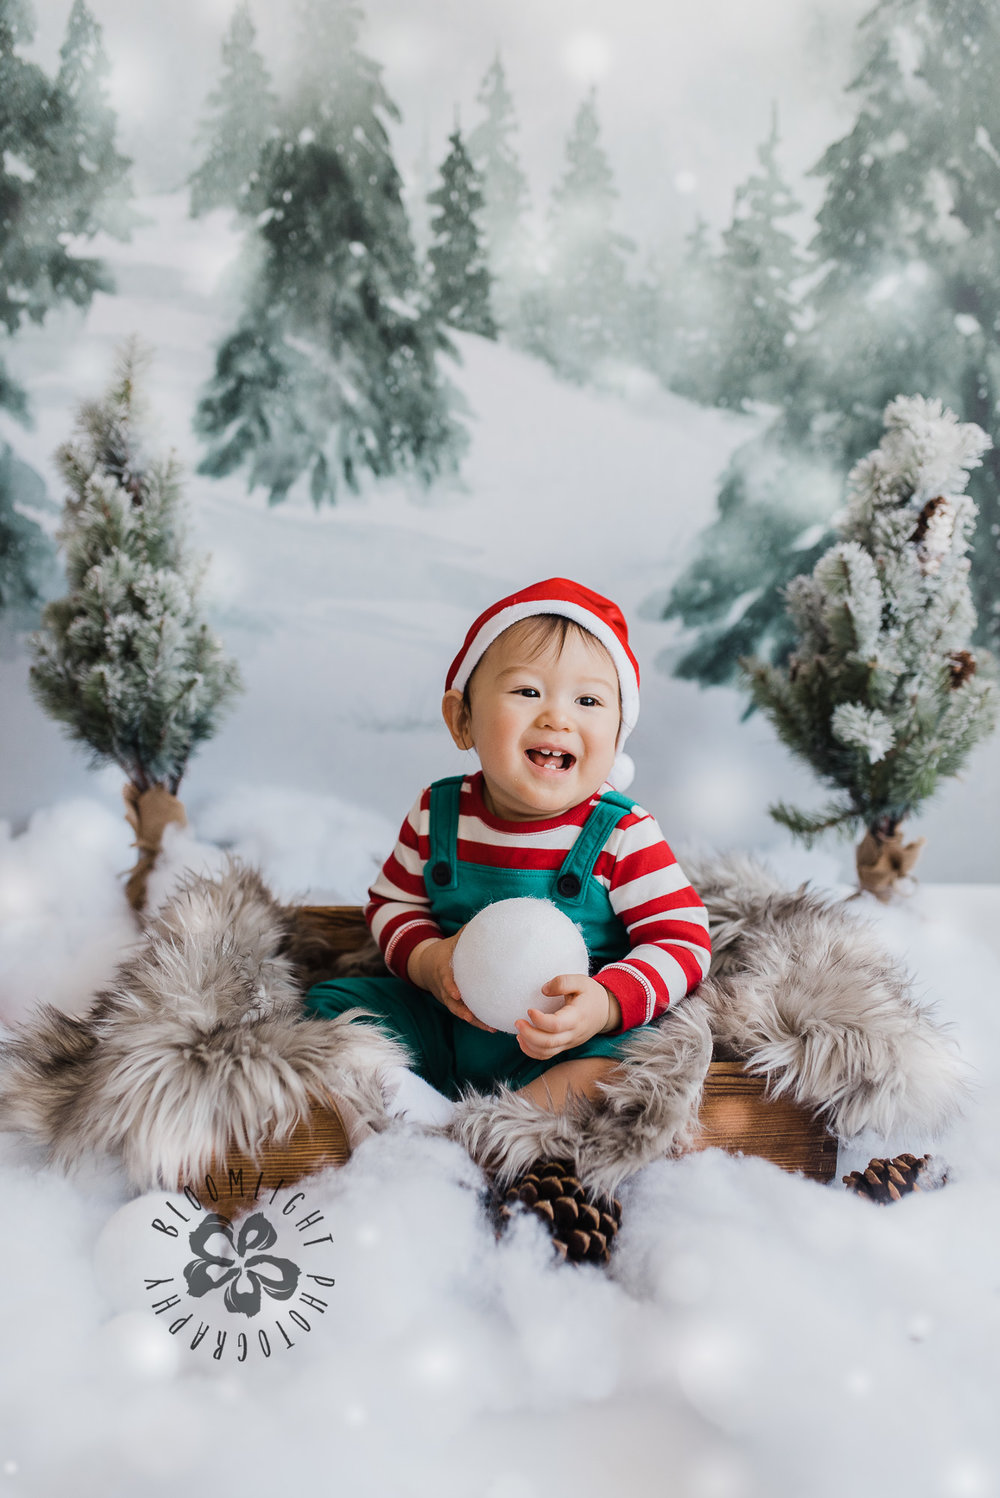 9 month old baby boy happy in a Christmas photo session